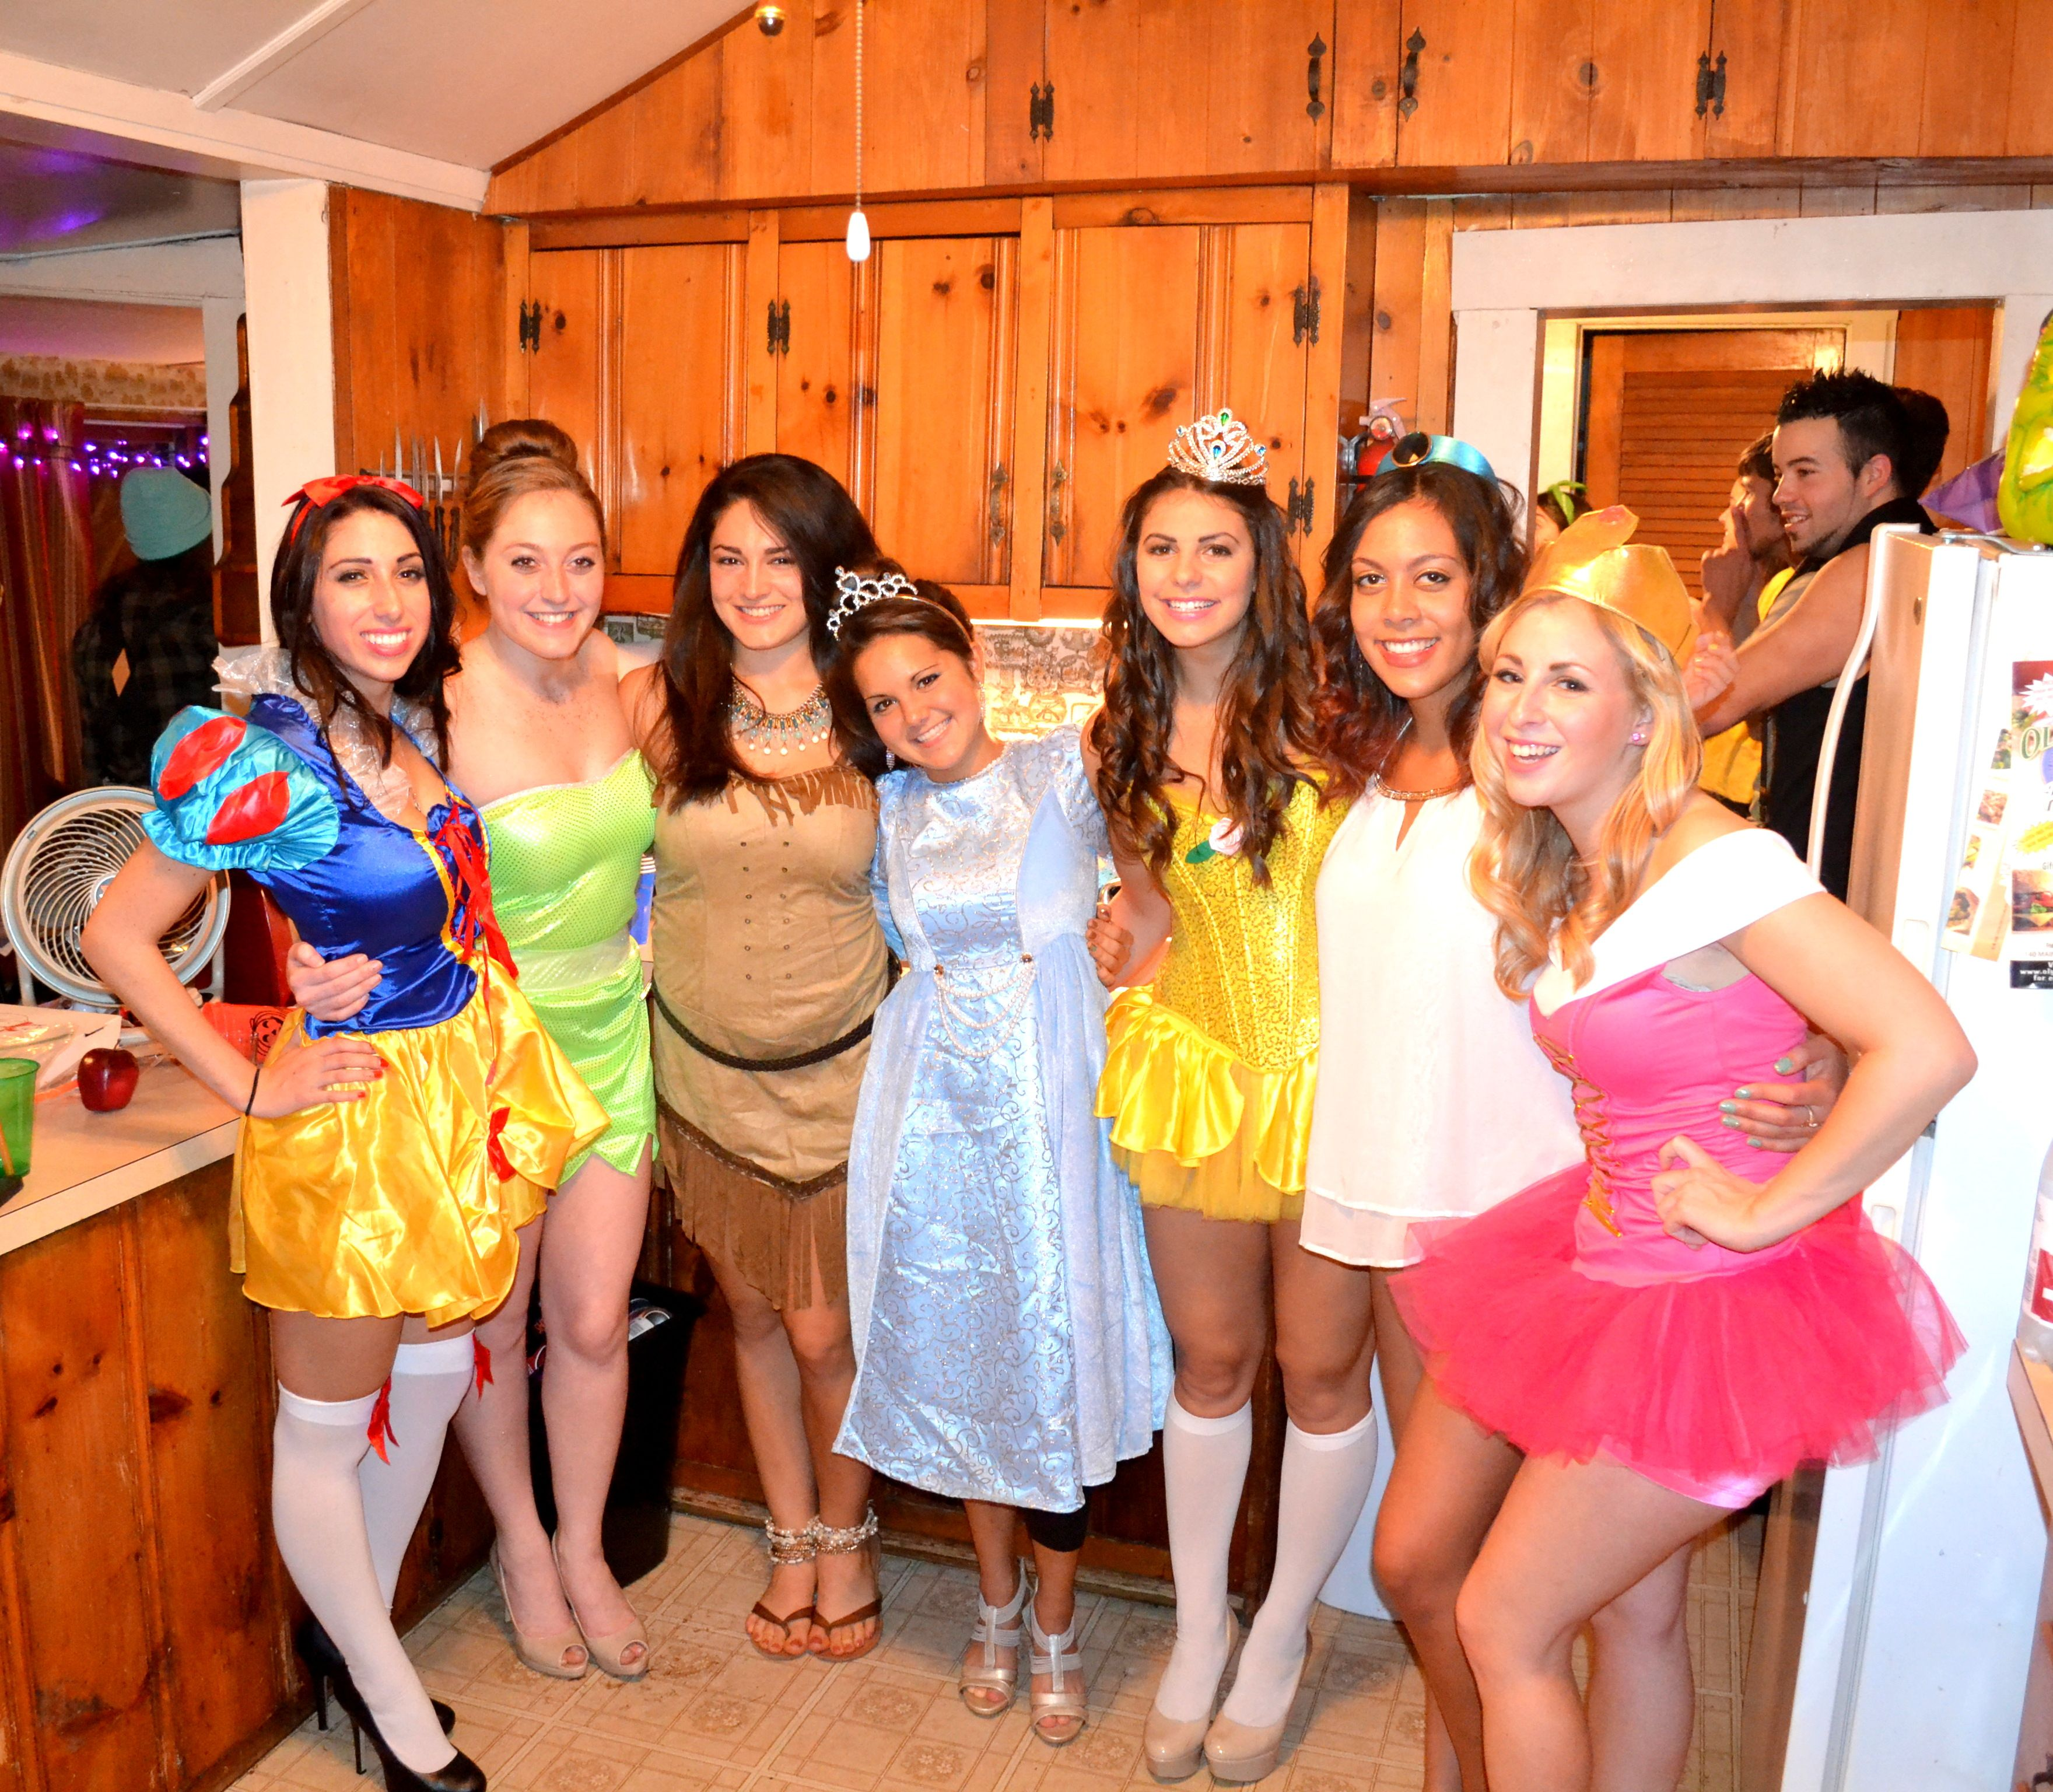 disney princess costumes! group costume idea Princess